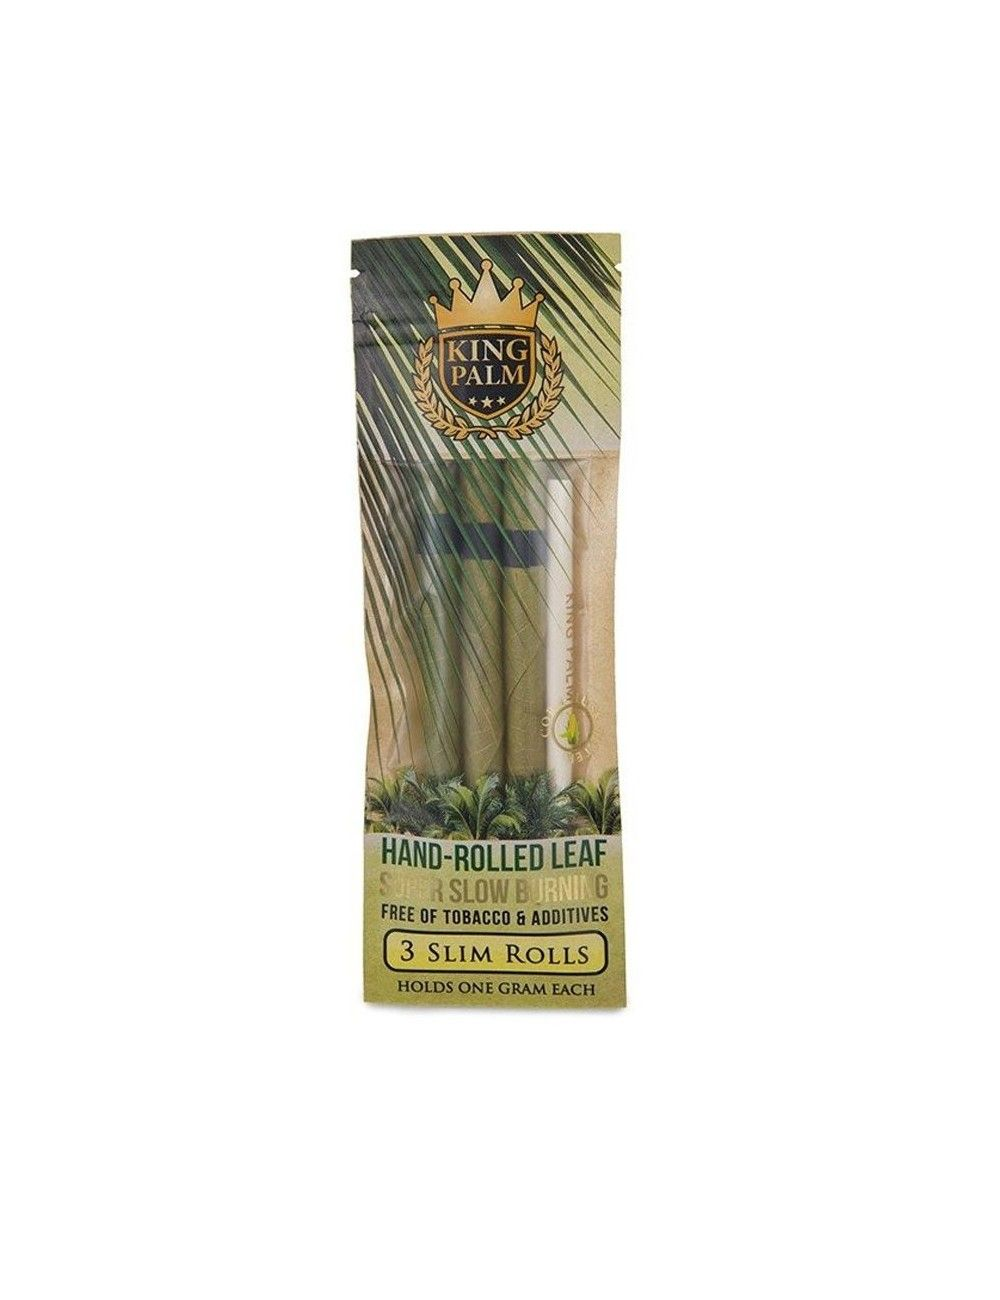 King Palm Cones Leaf - 3 Slim Rolls